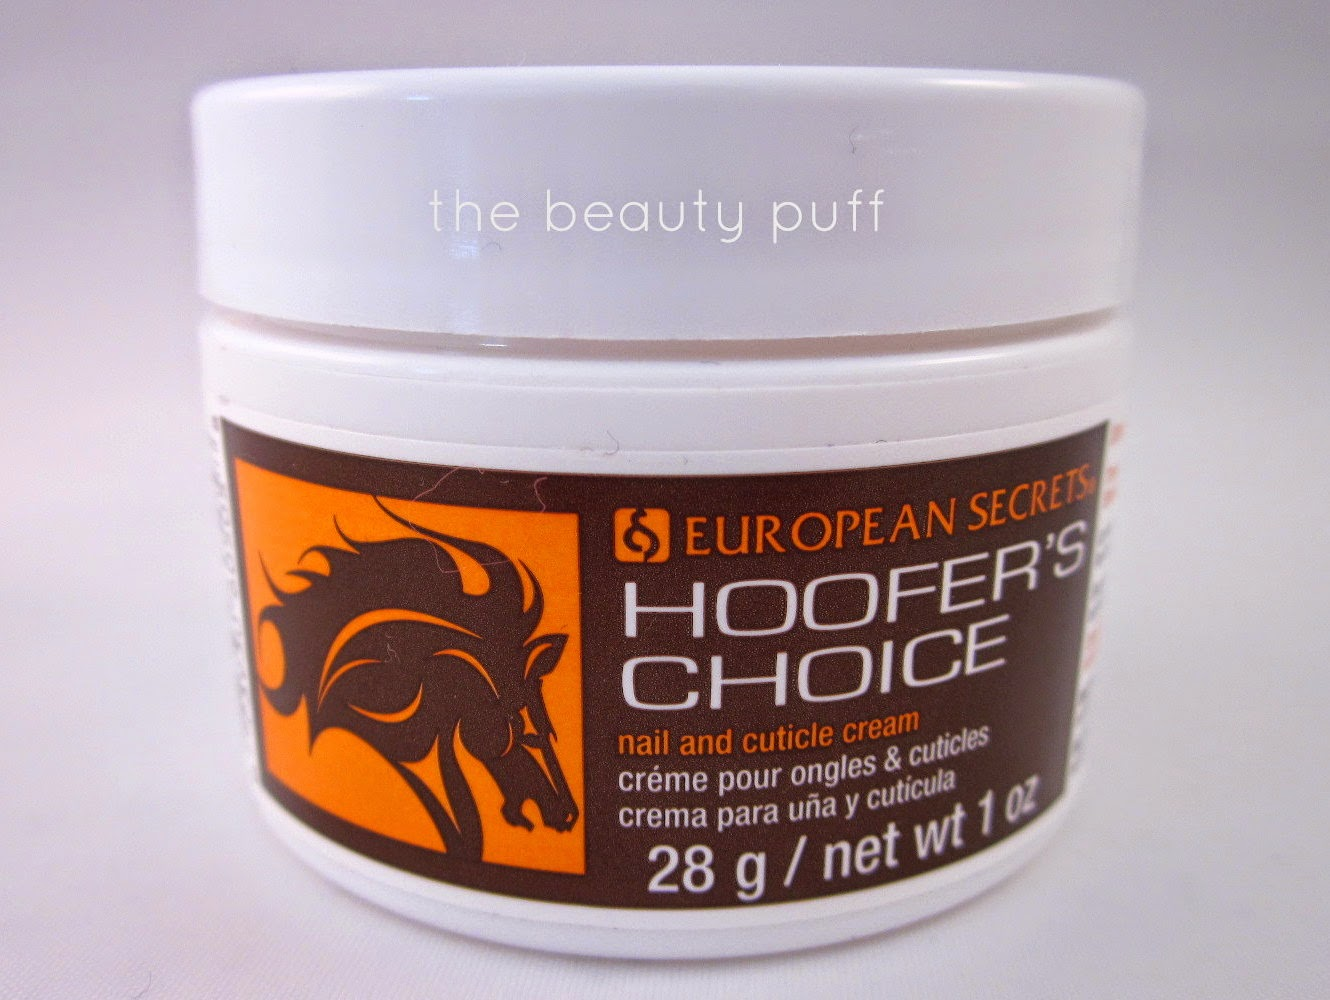 hoofers choice nail and cuticle cream - the beauty puff